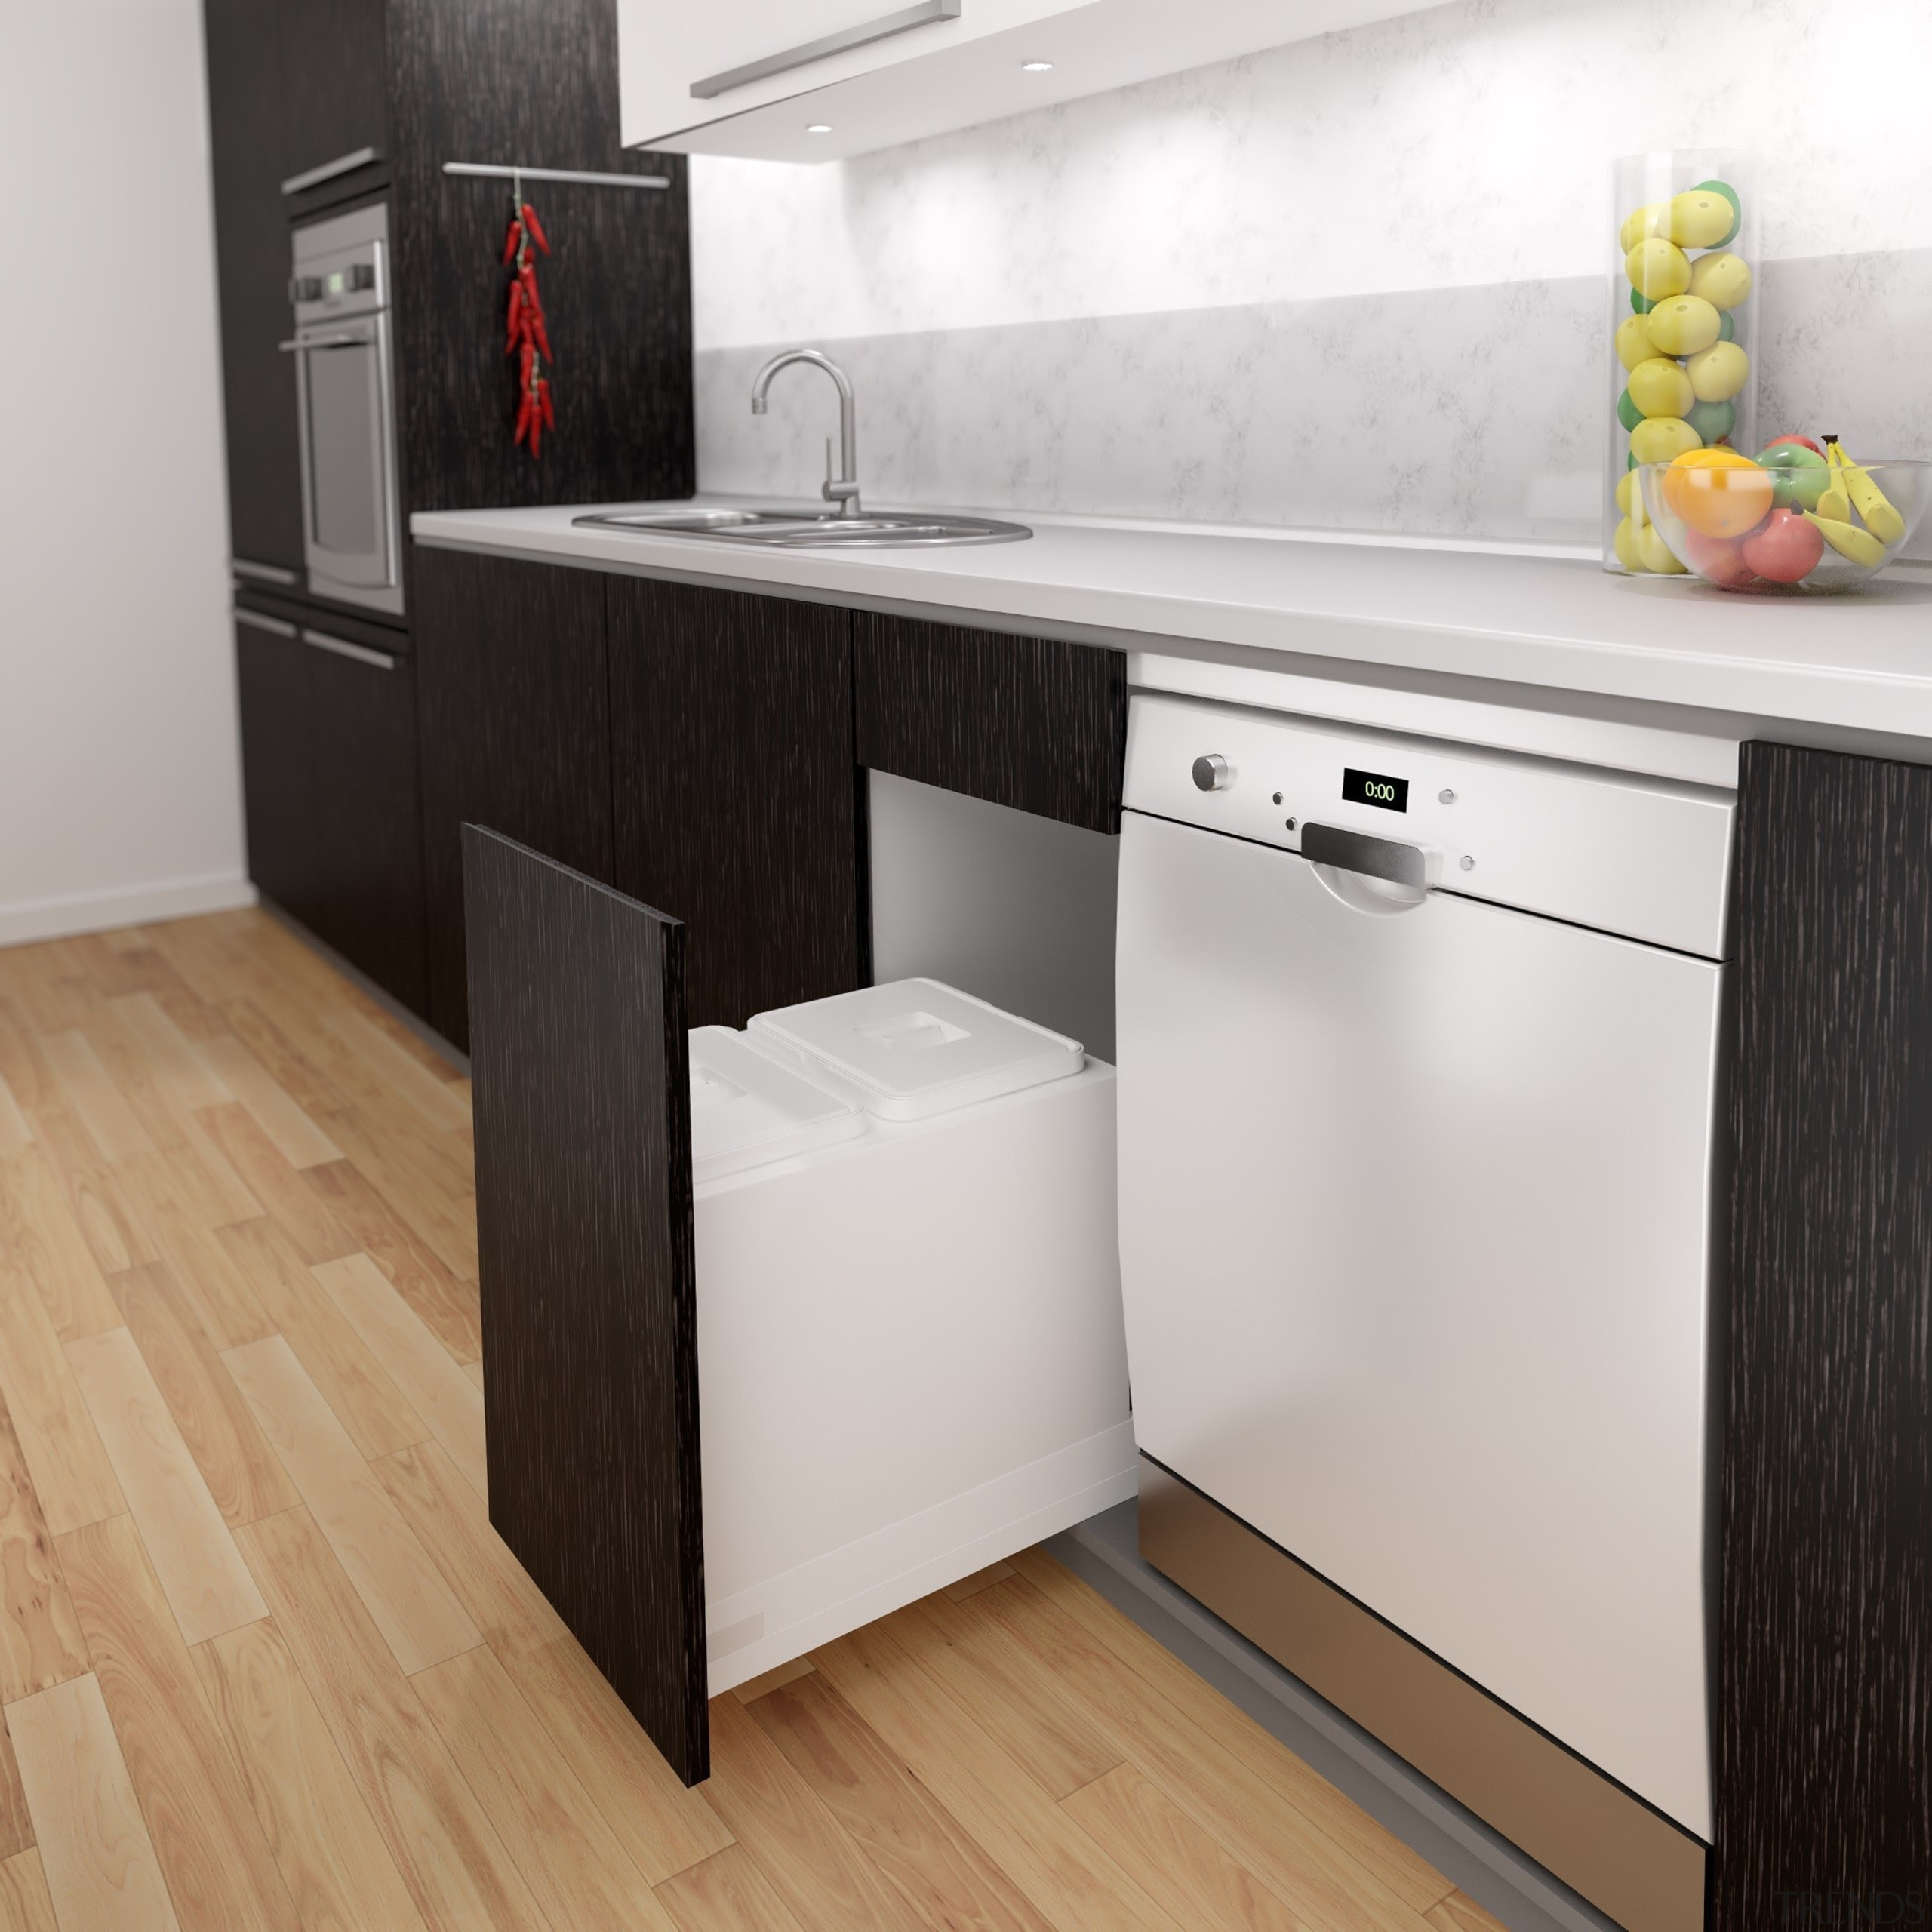 These Base Mounted Drawer Fitted Systems provide many cabinetry, countertop, floor, flooring, furniture, home appliance, interior design, kitchen, major appliance, product, white